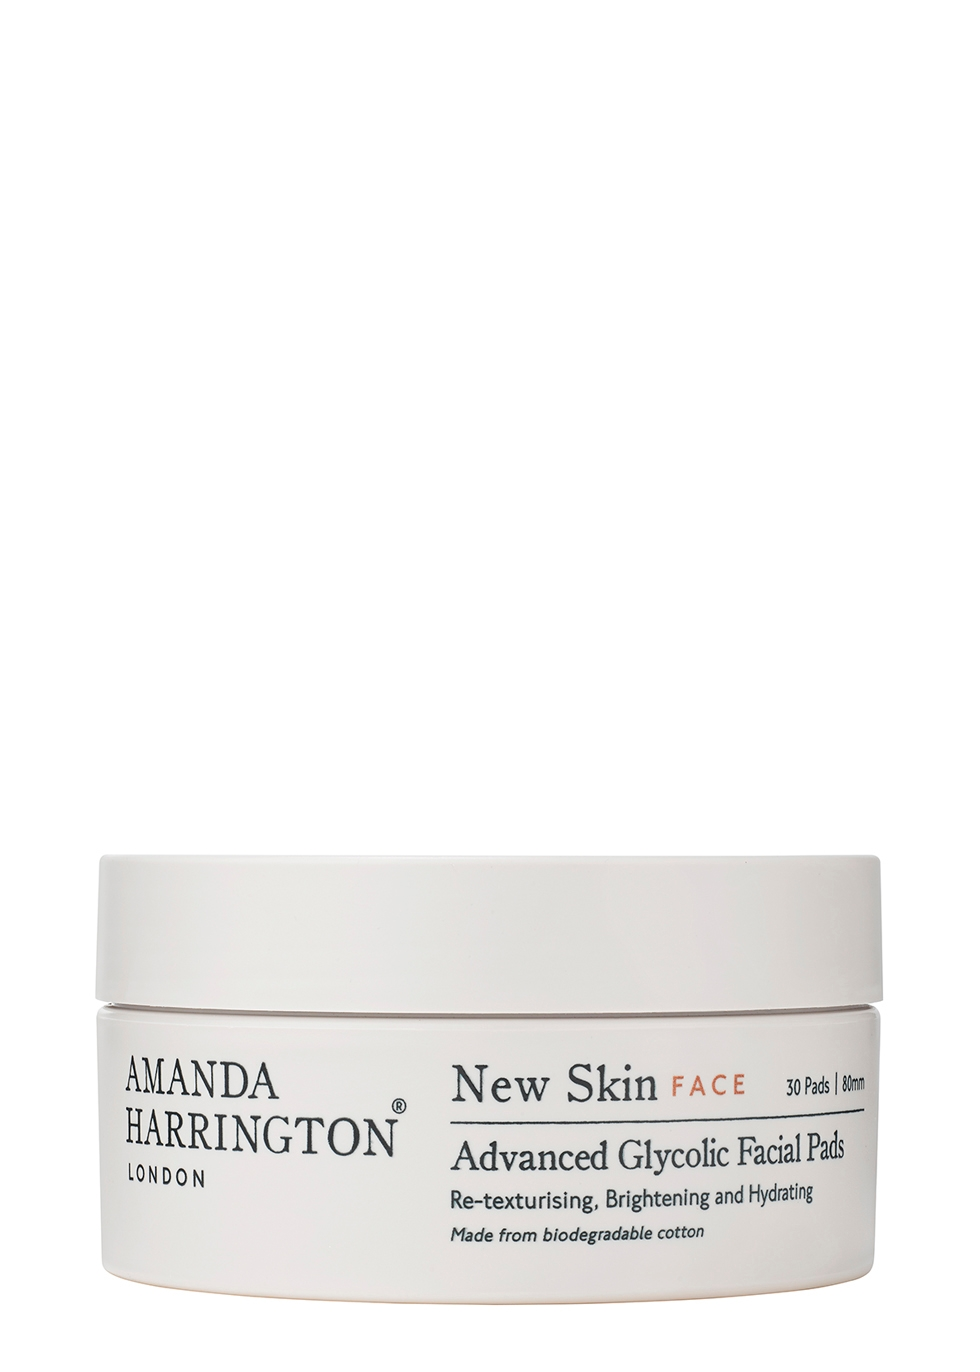 New Skin Face Advanced Glycolic Facial Pads